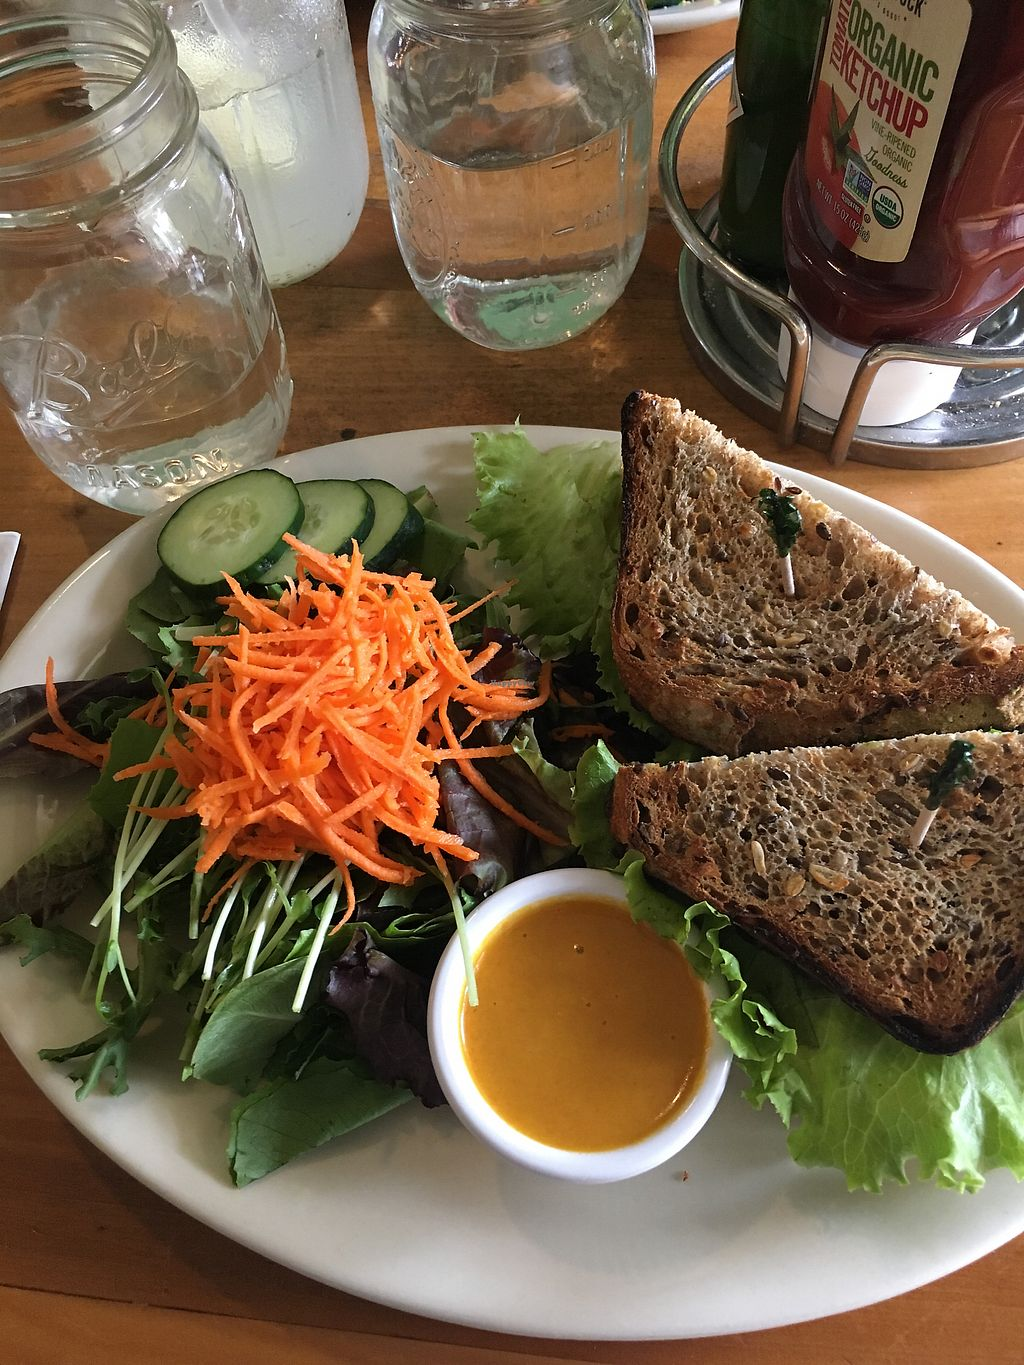 """Photo of Green Bean  by <a href=""""/members/profile/HannahKantor"""">HannahKantor</a> <br/>veggie blt and fresh house salad with carrot ginger dressing.  <br/> August 31, 2017  - <a href='/contact/abuse/image/12942/299261'>Report</a>"""